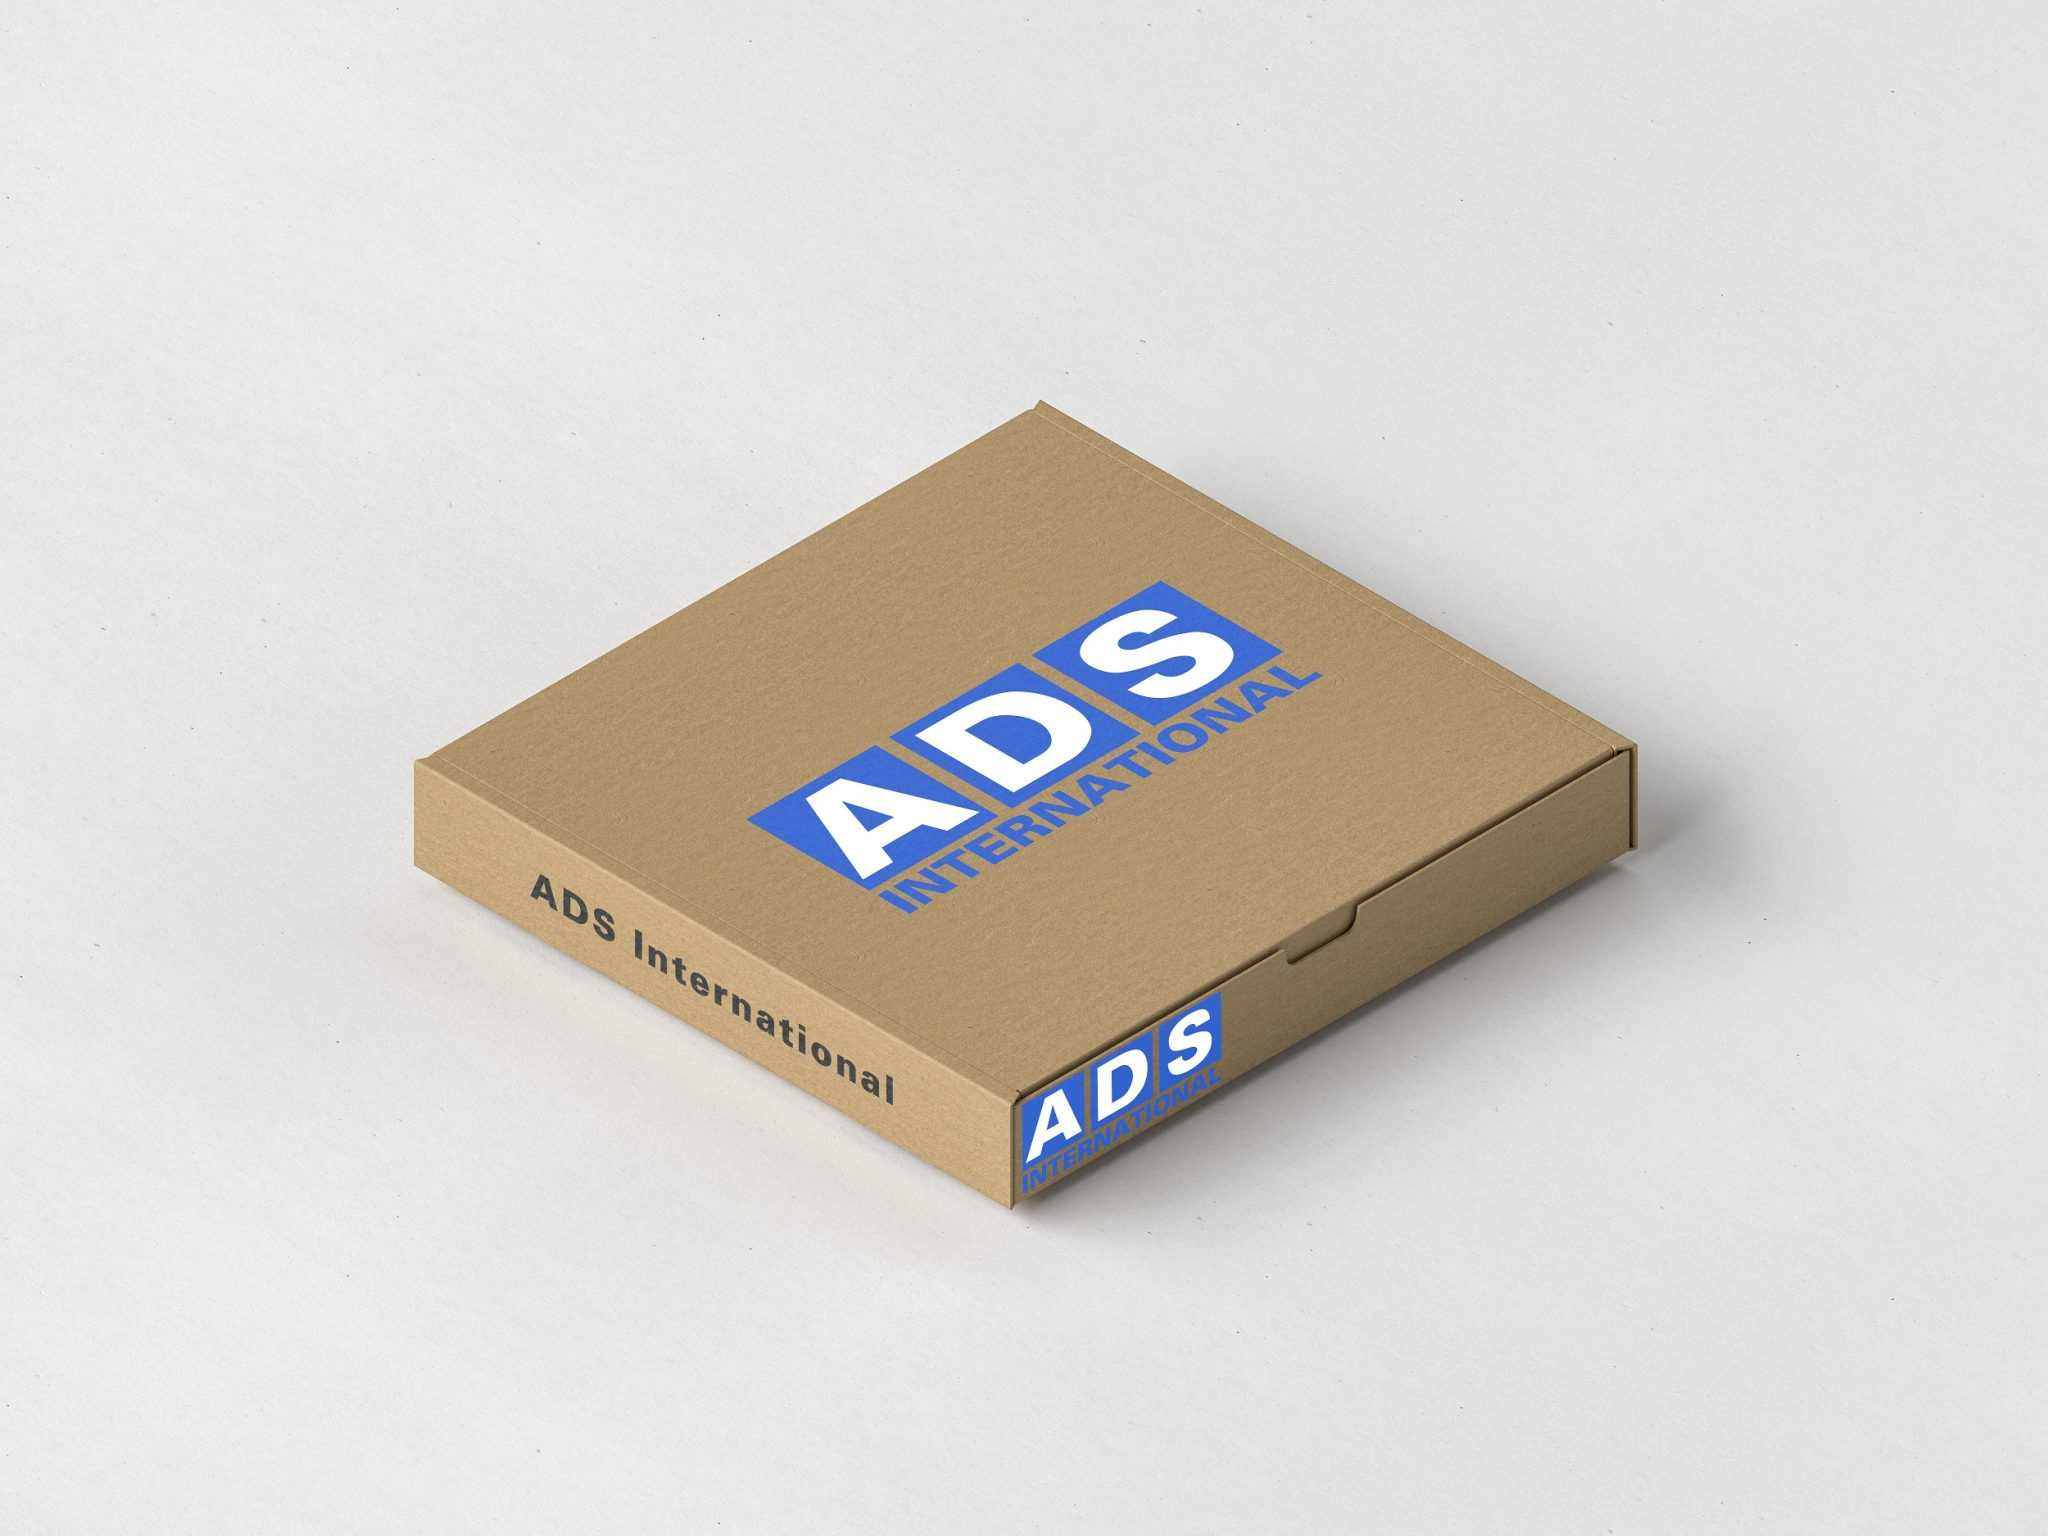 cardboard-box-ADS-International